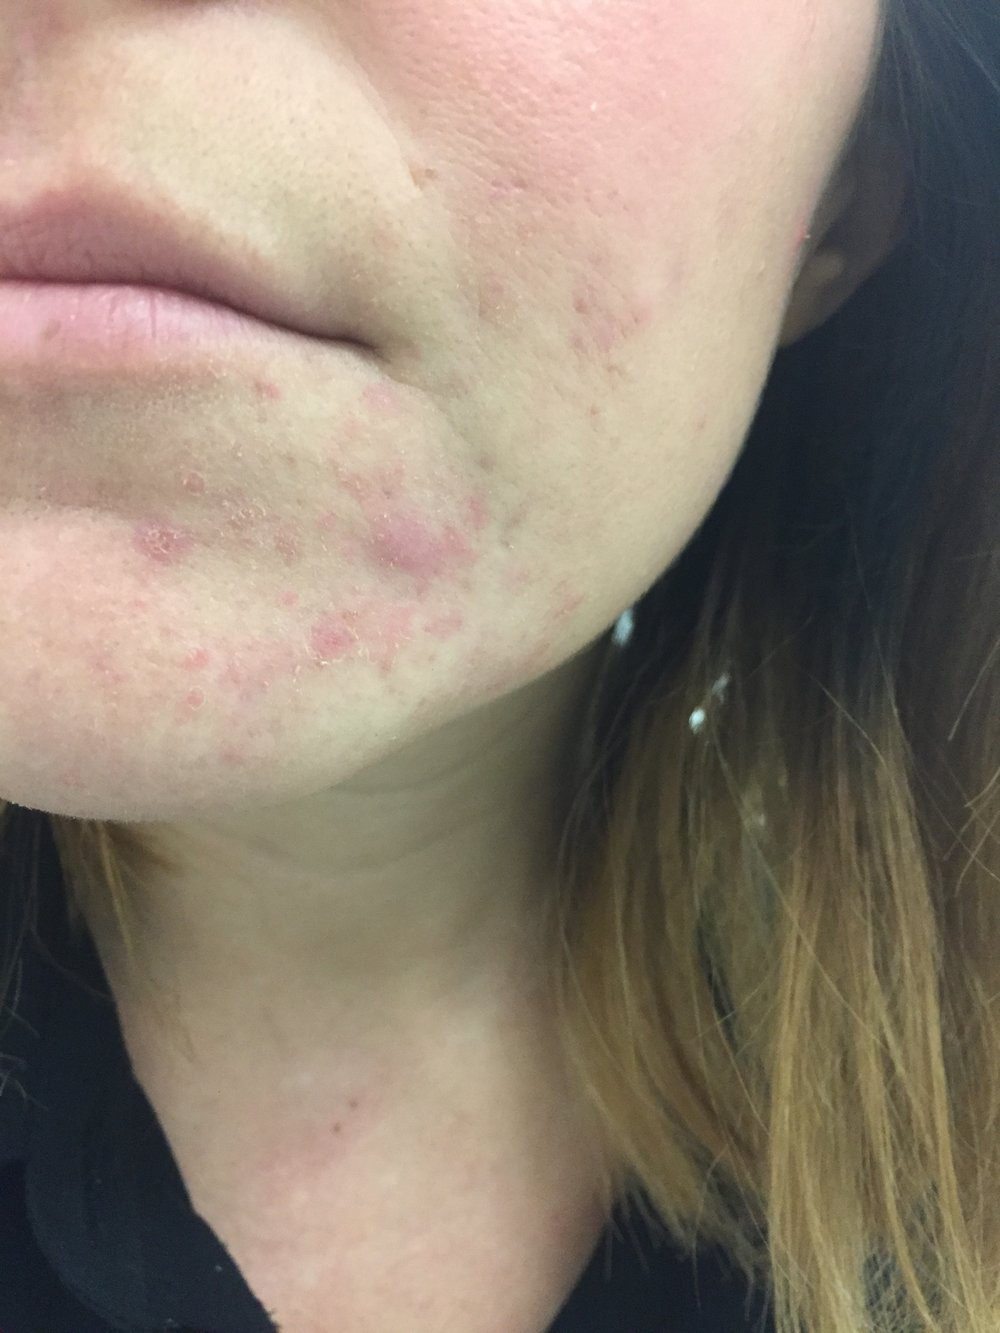 November 2016: - During this time I had a lot going on in my life; I was working a job with all men, and even though I knew they weren't judging me - I felt embarrassed to come to work everyday with angry spots on my face. I remember a lot of mornings, sitting on the train, distracted by the throbbing pain on my face, begging myself not to cry in public.